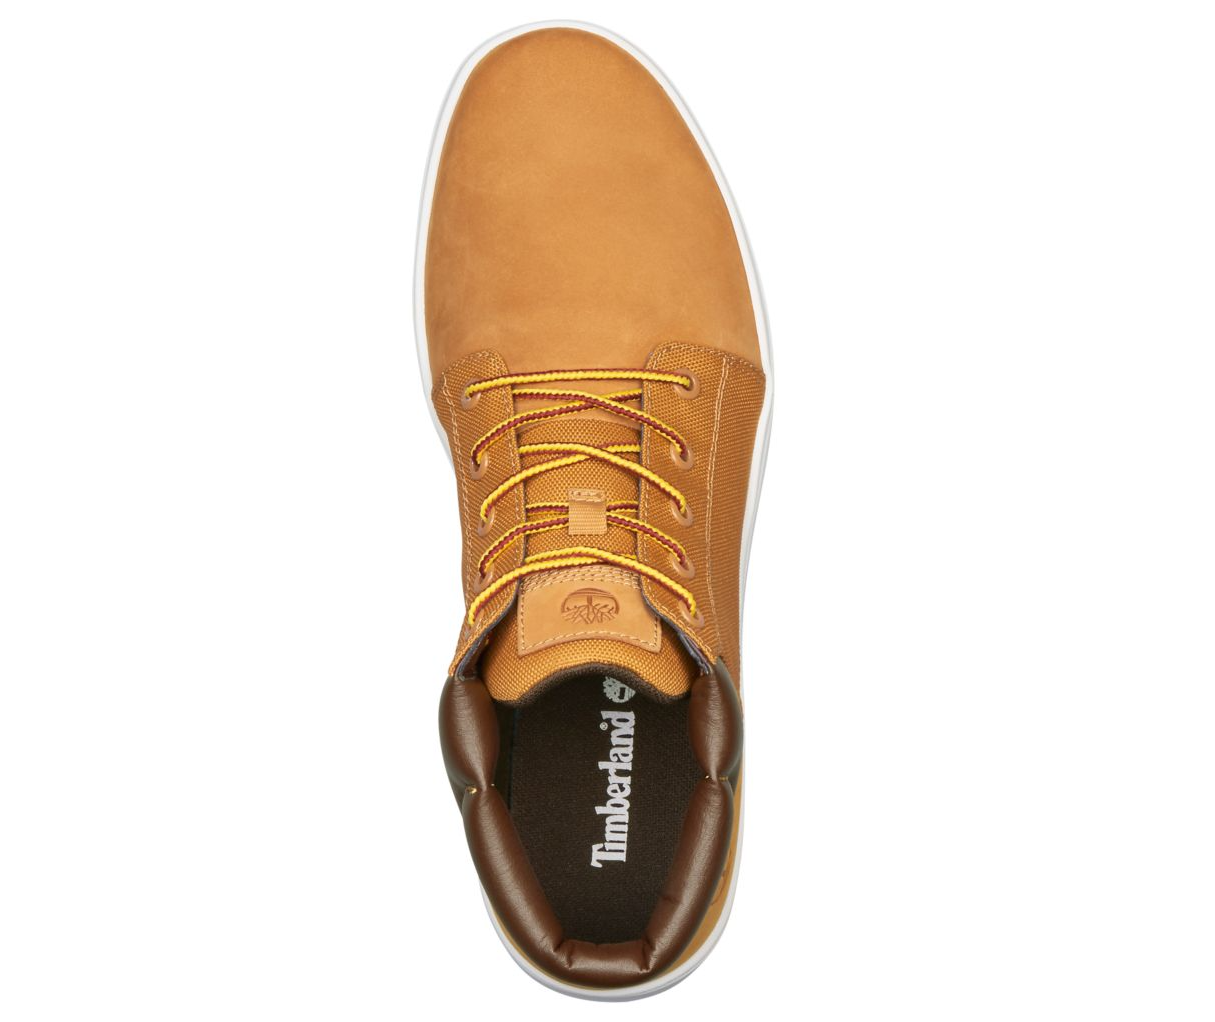 TIMBERLAND MEN'S DAVIS SQUARE MIXED-MEDIA CHUKKA SHOES